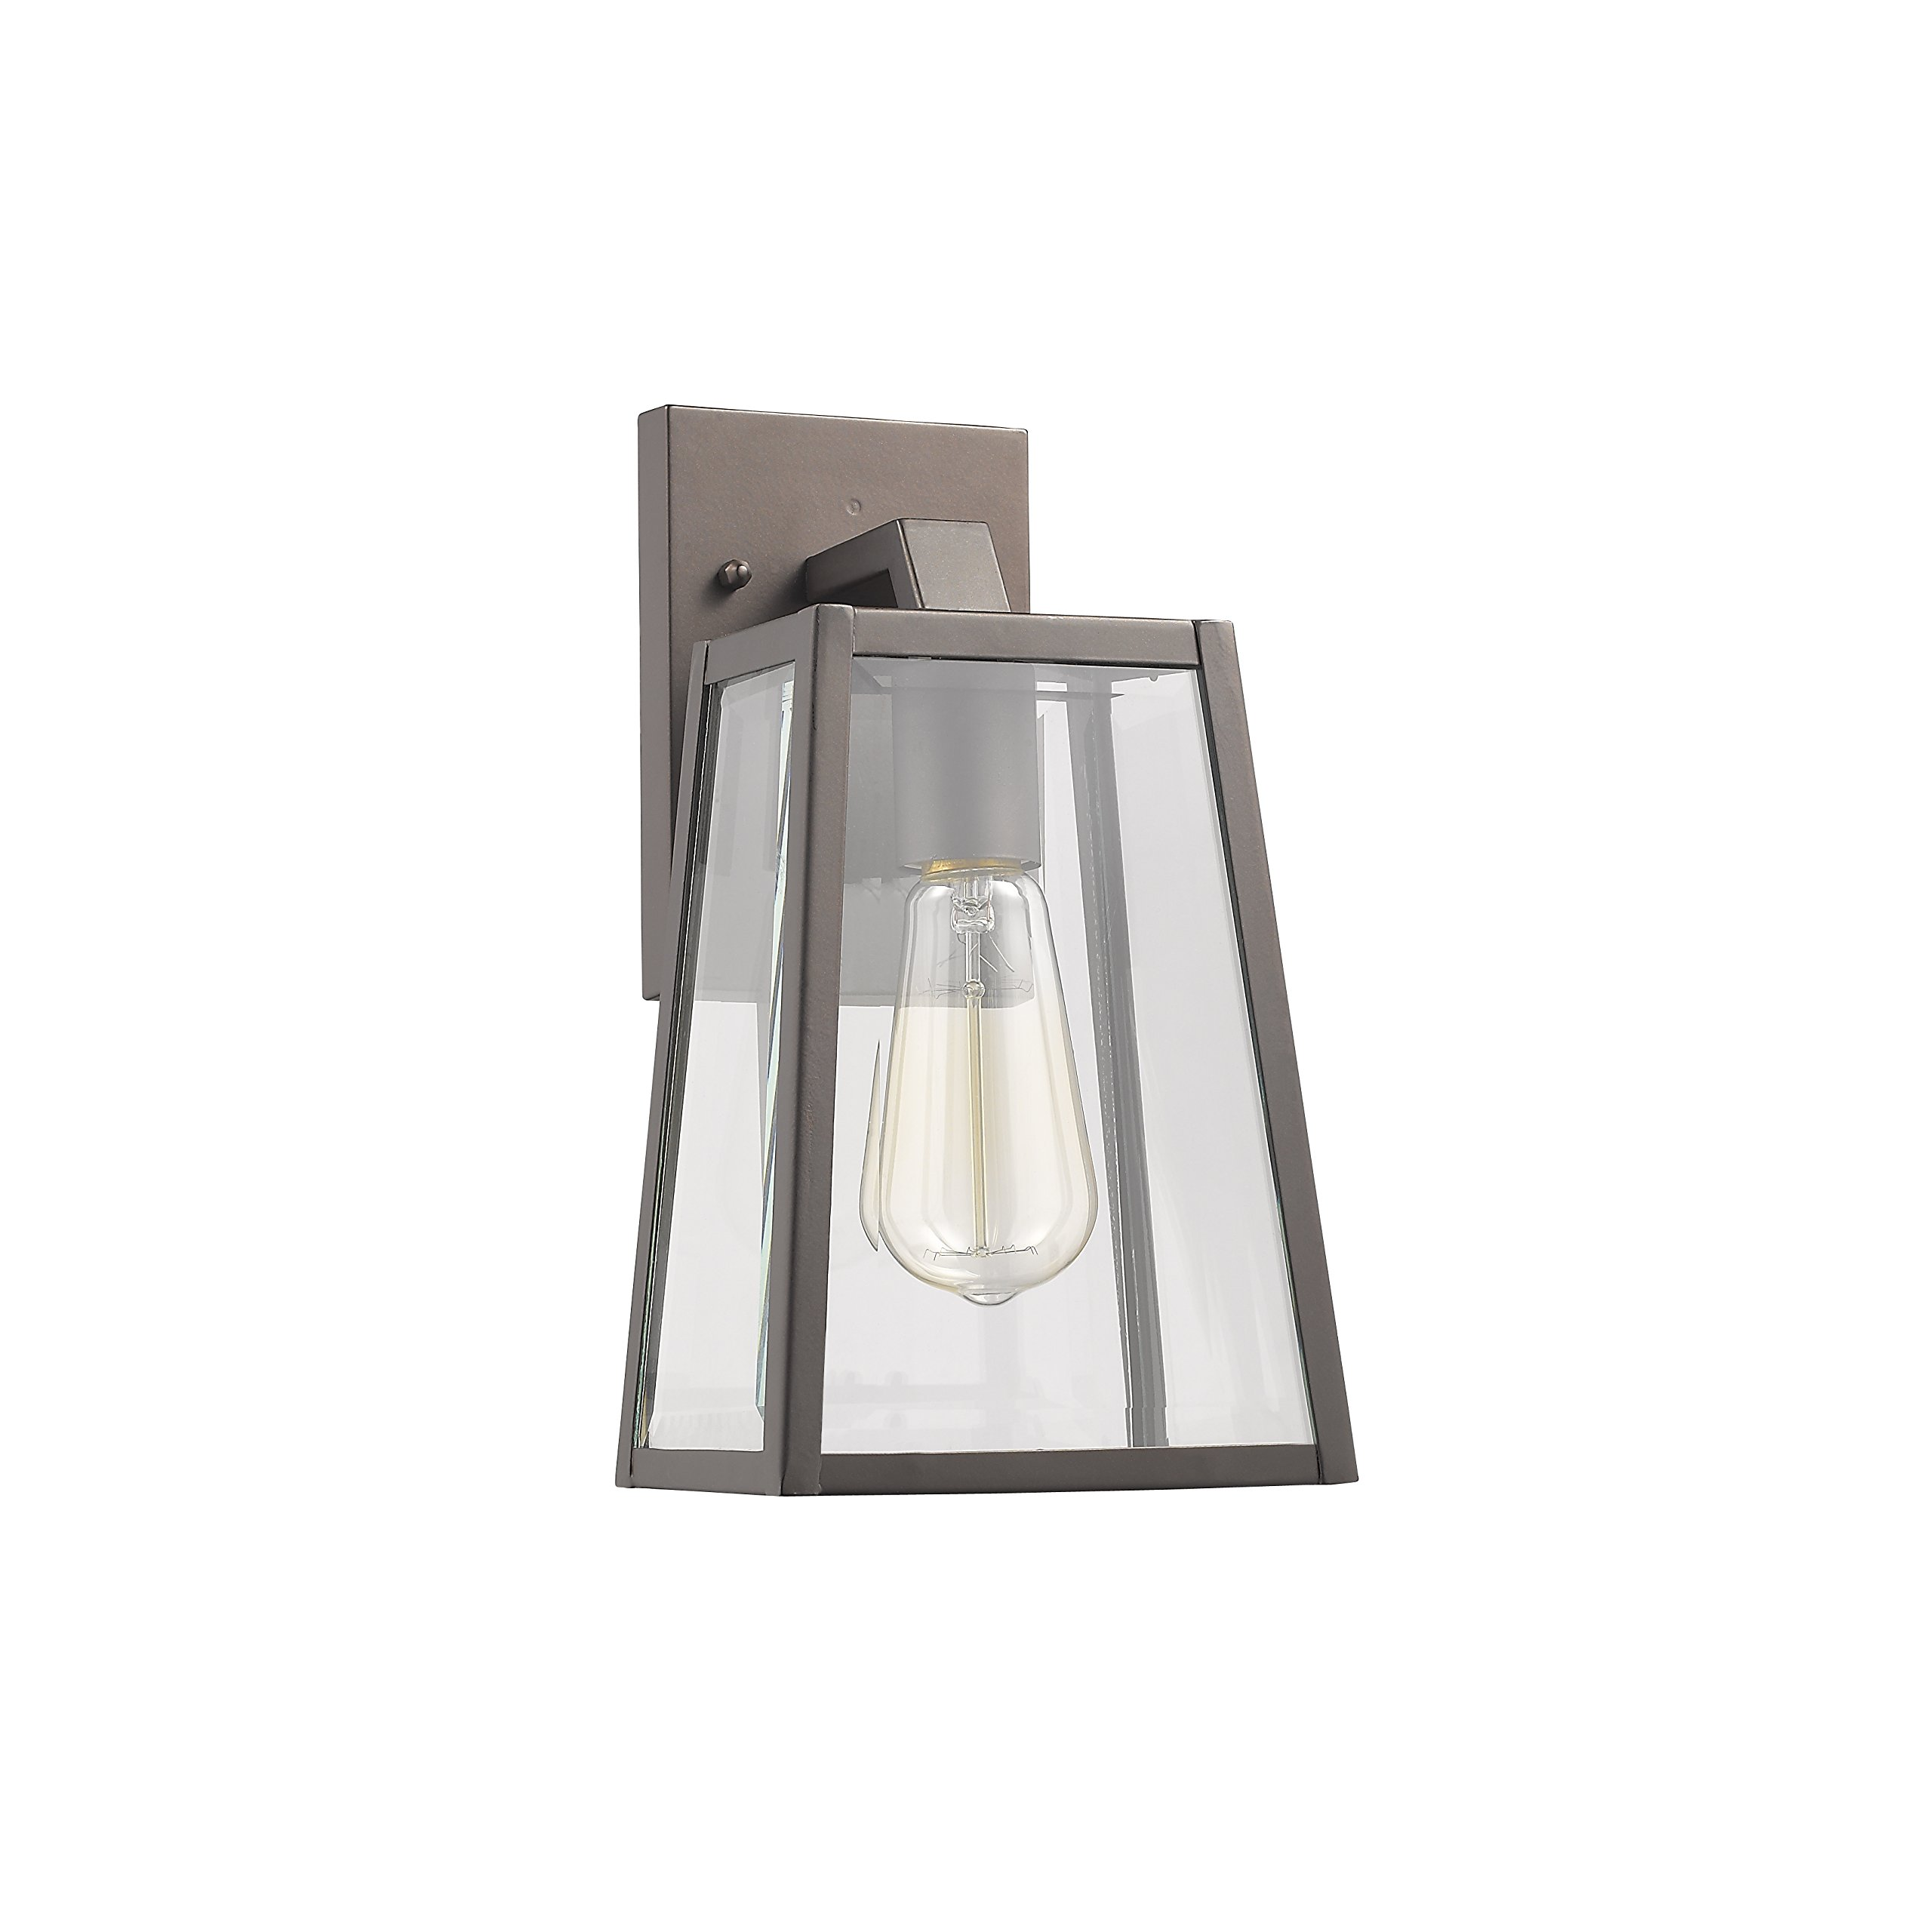 Chloe Lighting Leodegrance Transitional 1 Light Rubbed Bronze Outdoor Wall Sconce 11'' Height by Chloe Lighting